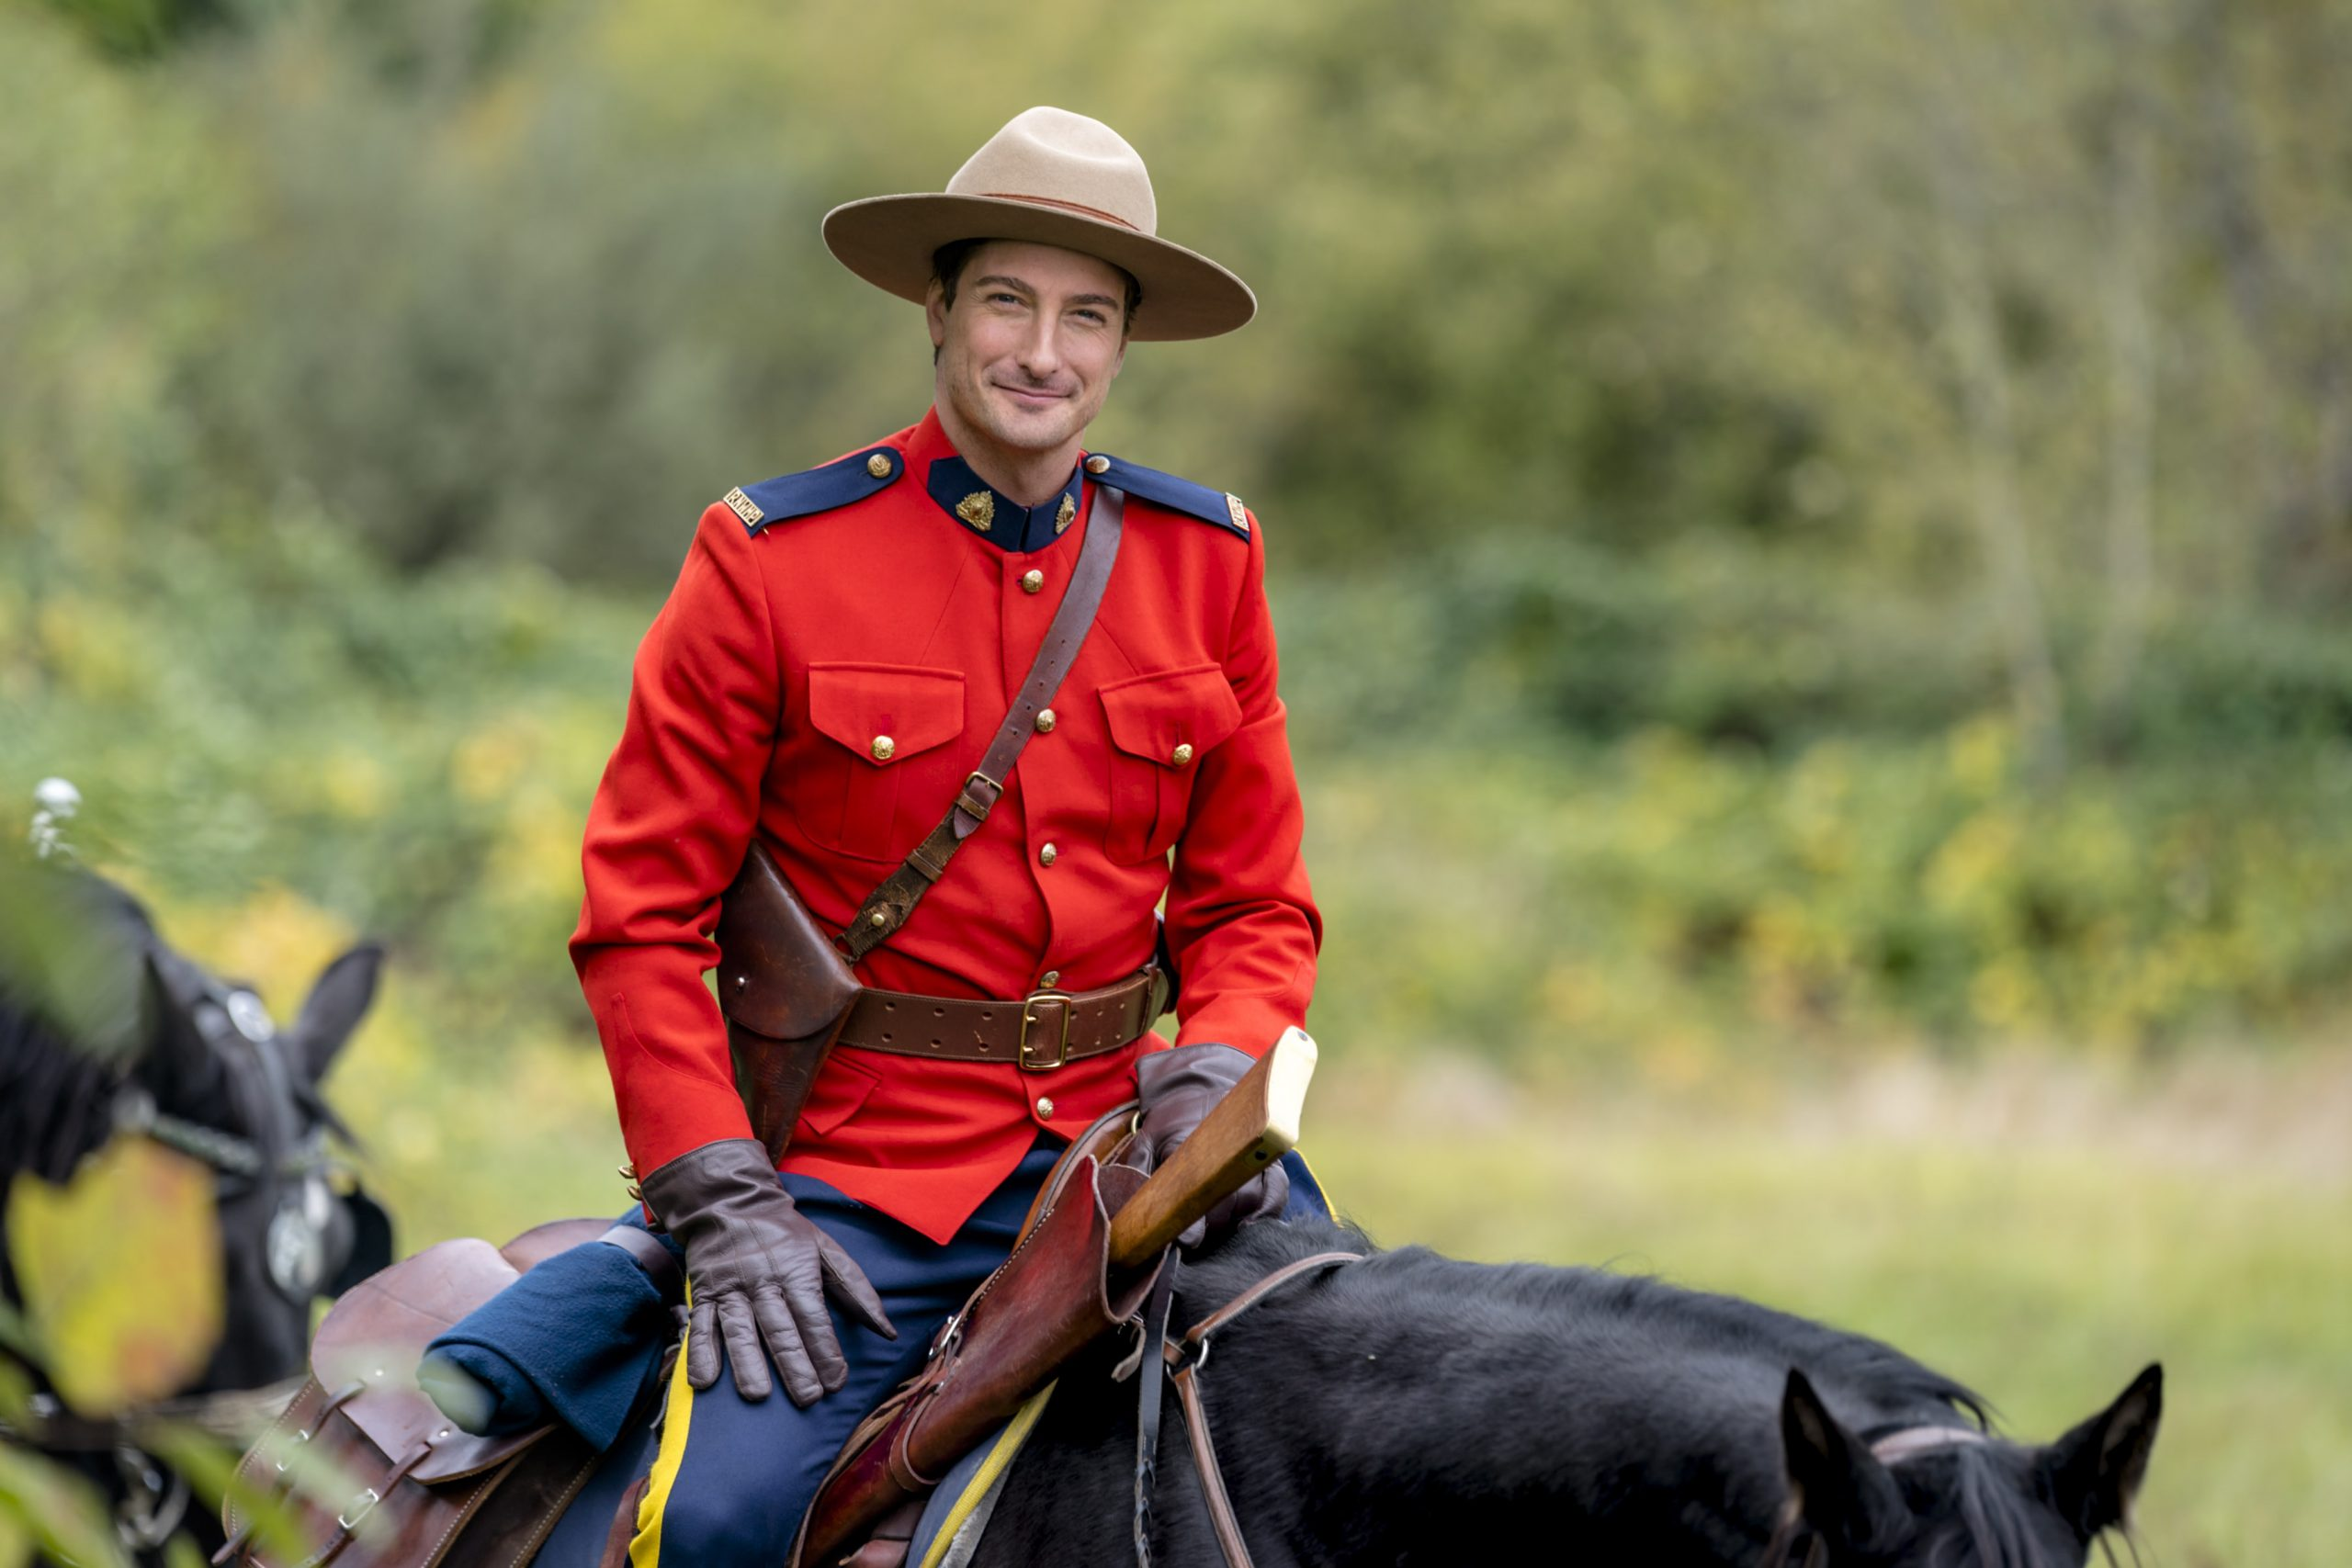 Daniel Lissing, as Jack, riding a horse in When Calls the Heart